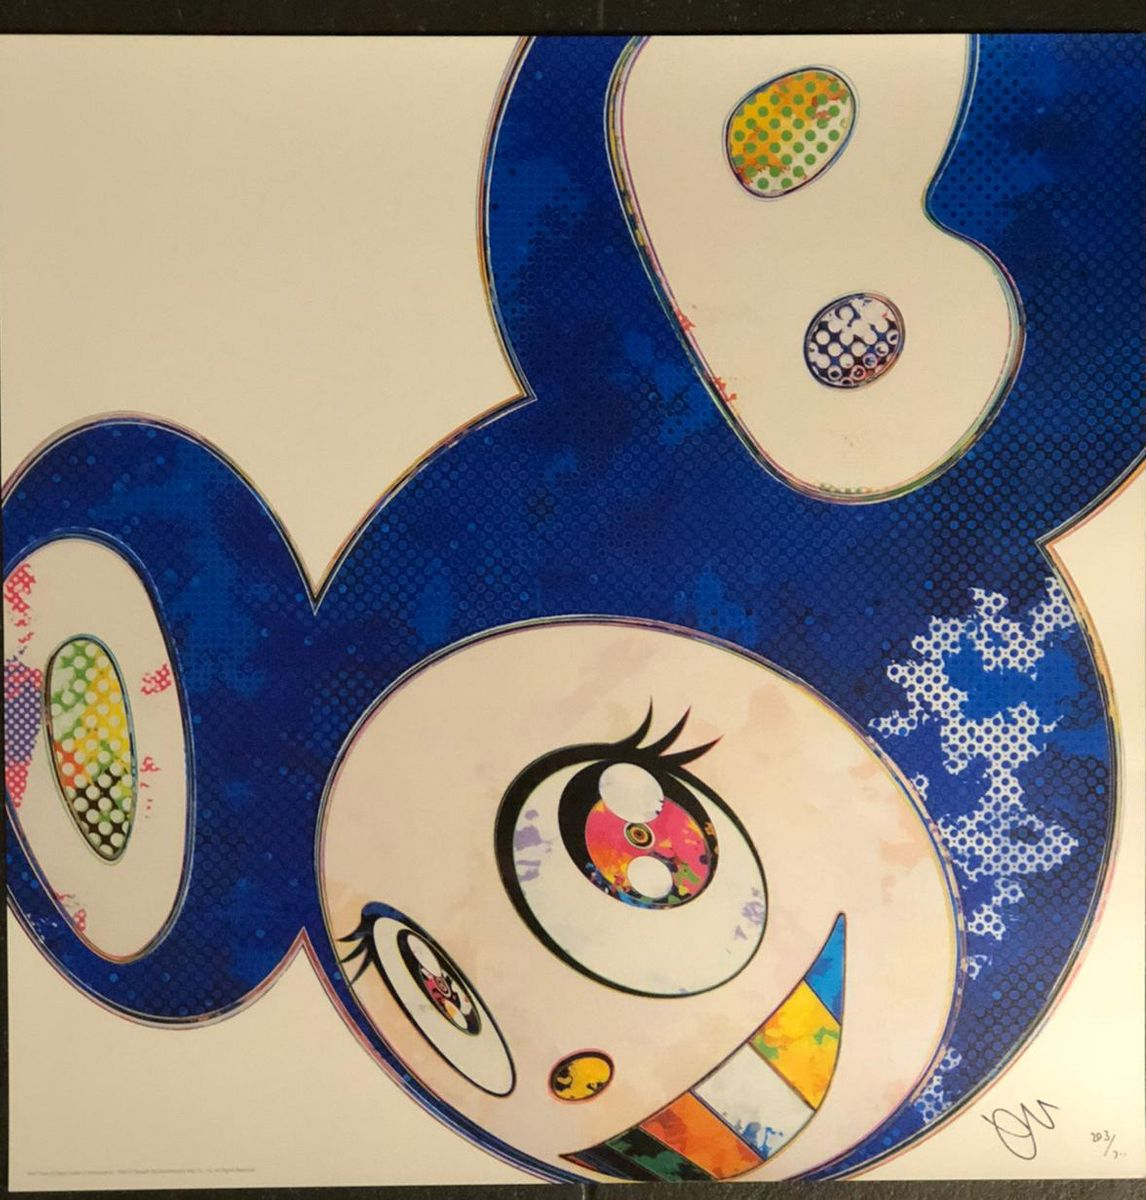 And then, and then, and then by Takashi Murakami, Fausto Gasparetto (2 of 2)